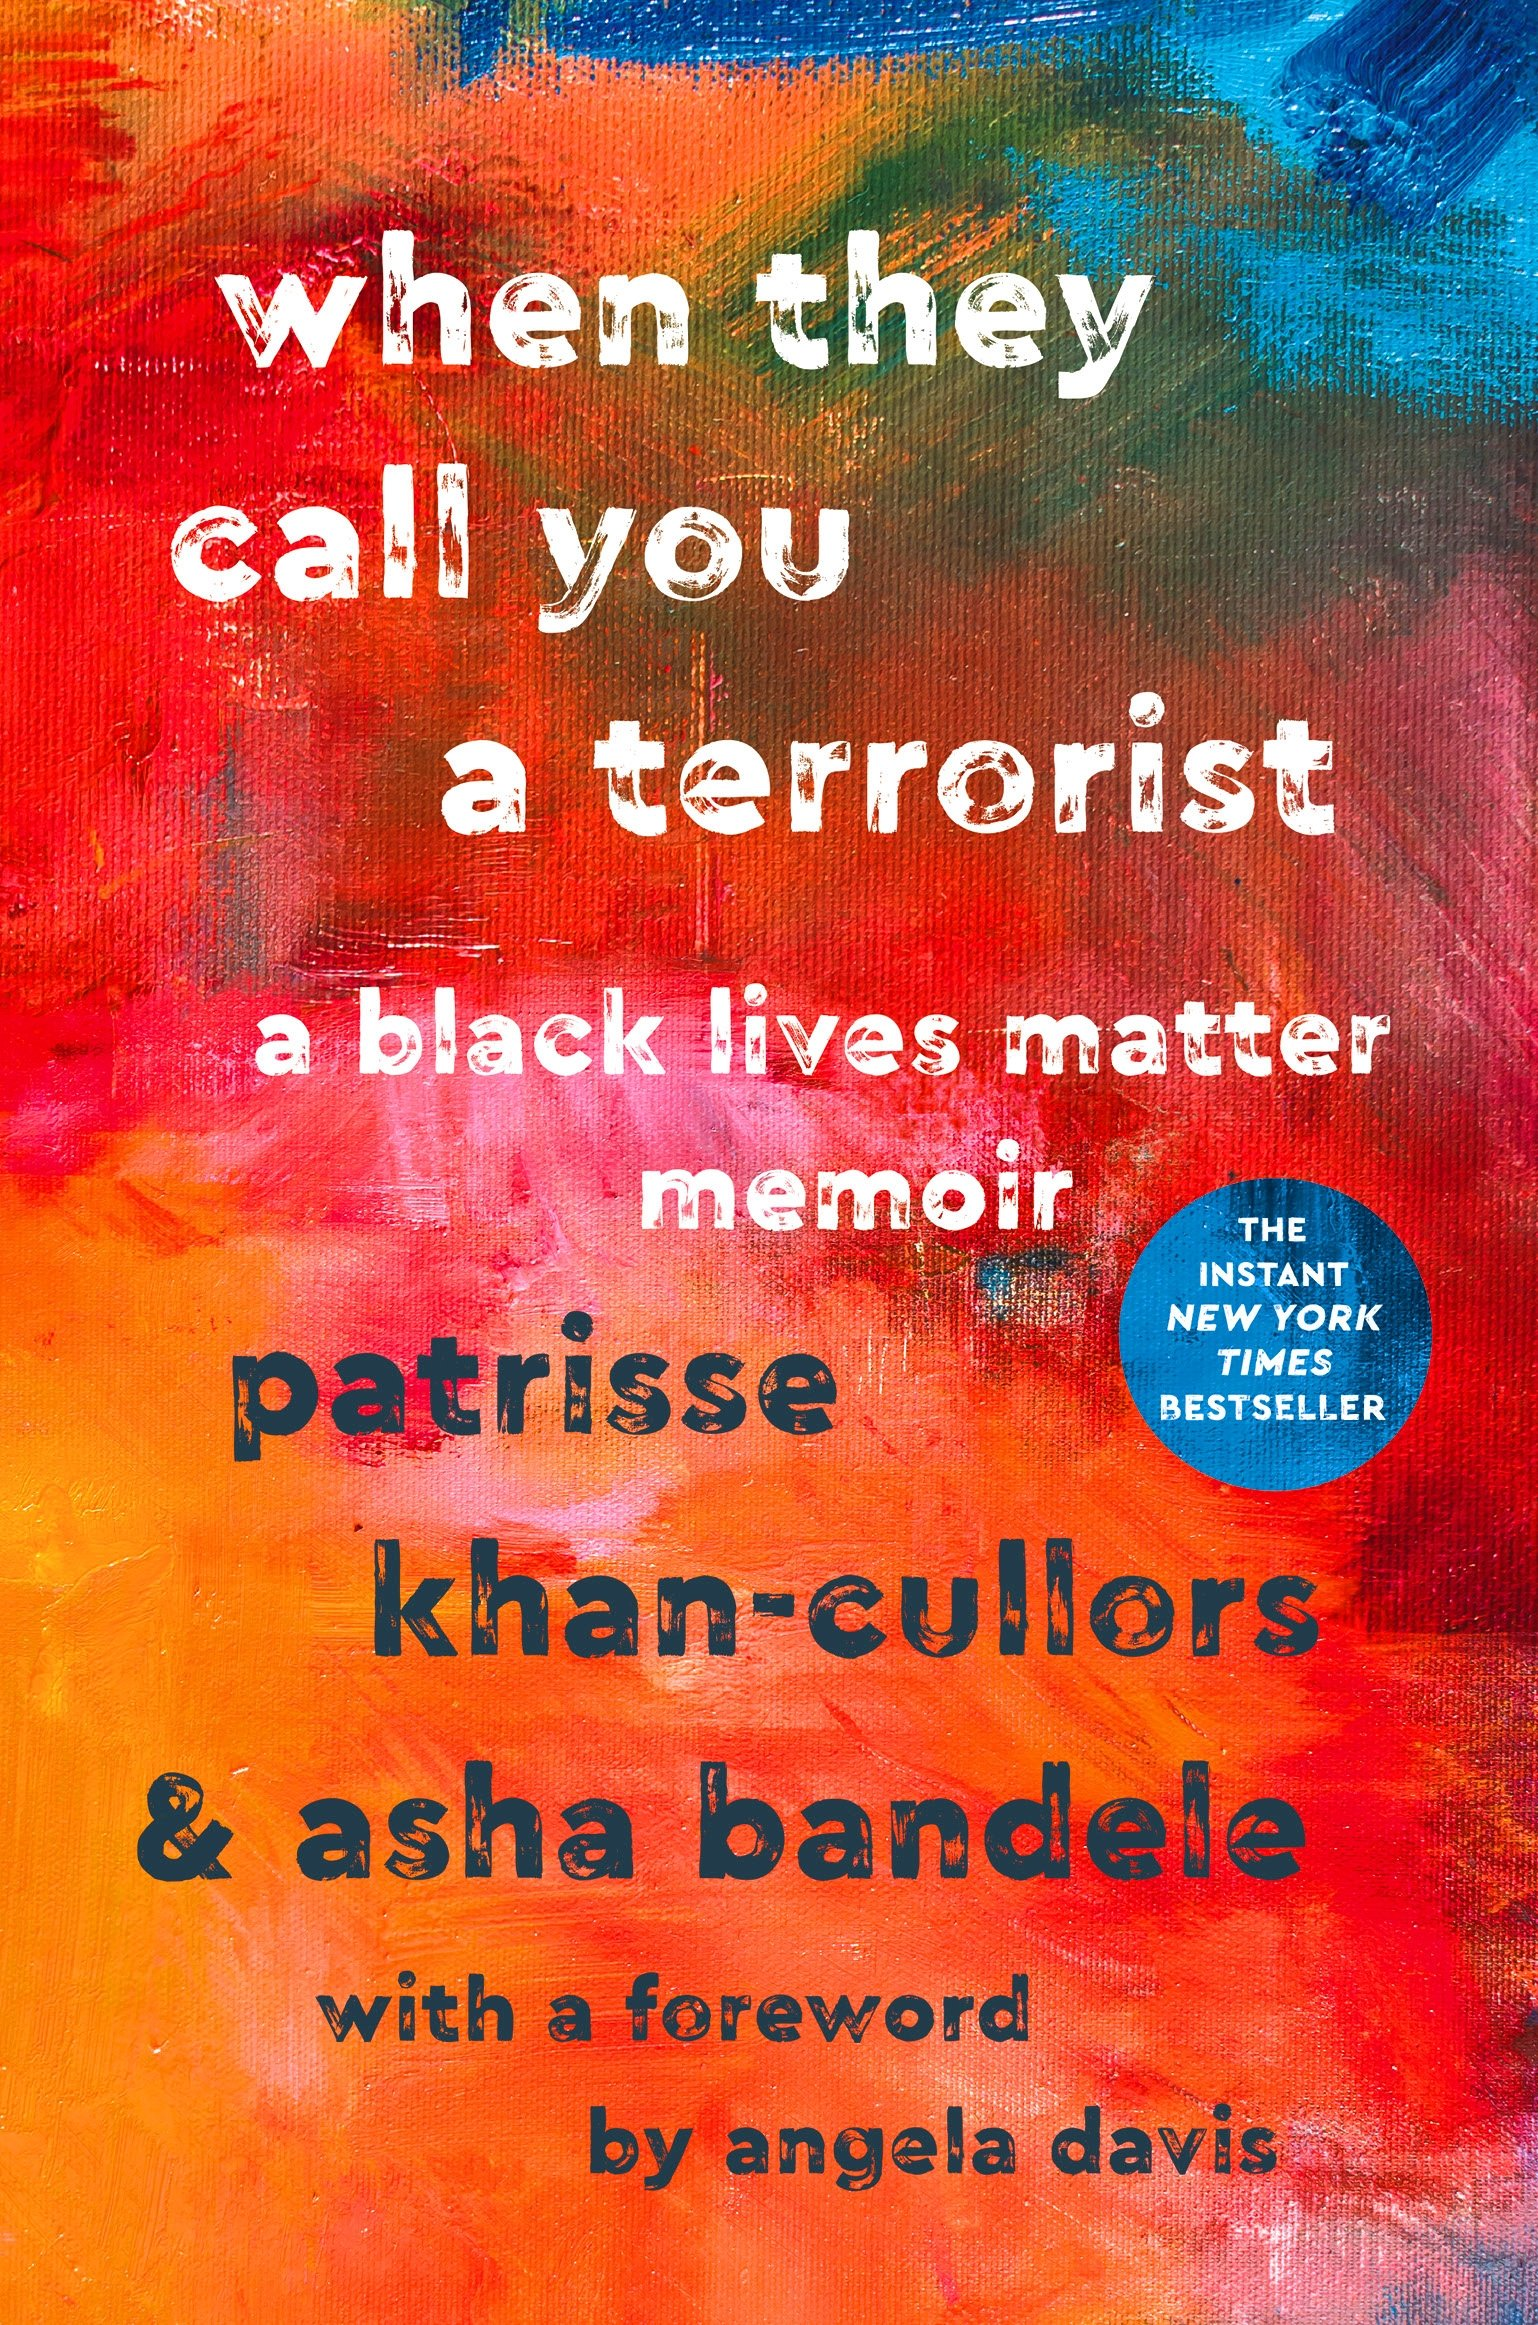 When They Call You a Terrorist by Patrisse Khan-Cullors & Asha Bandele | SLJ Review